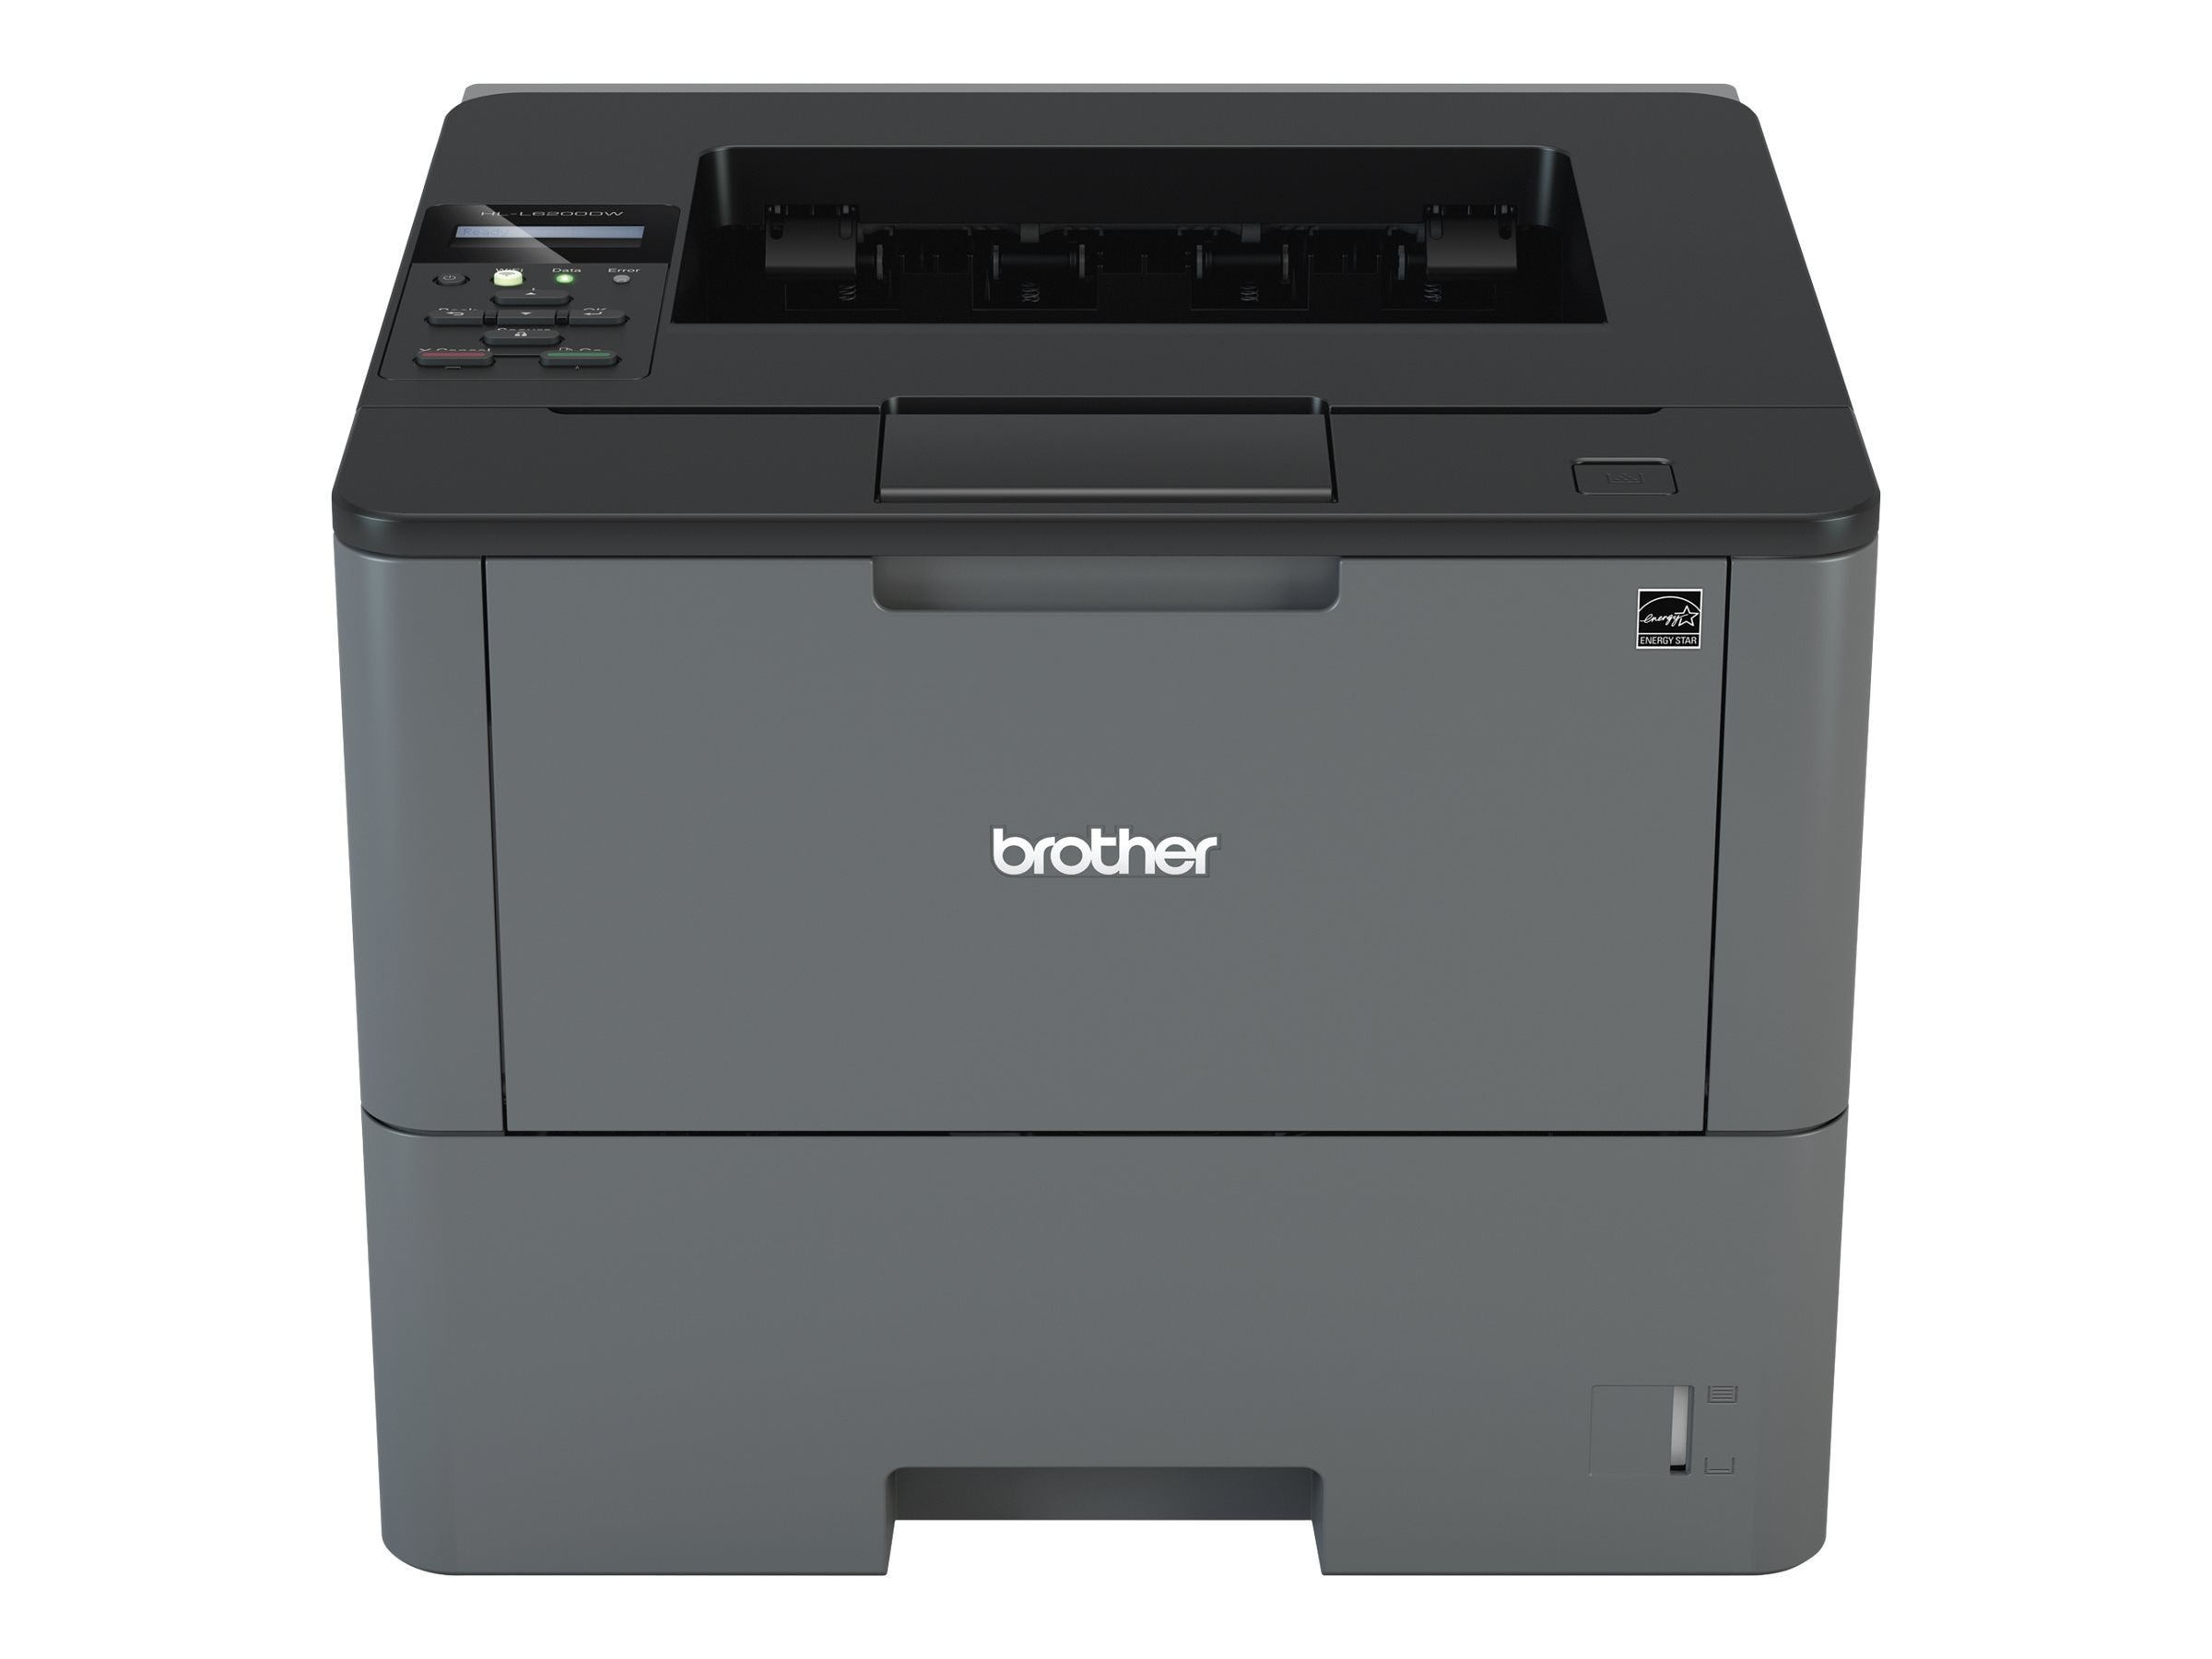 Brother HL-L6200DW Image 2